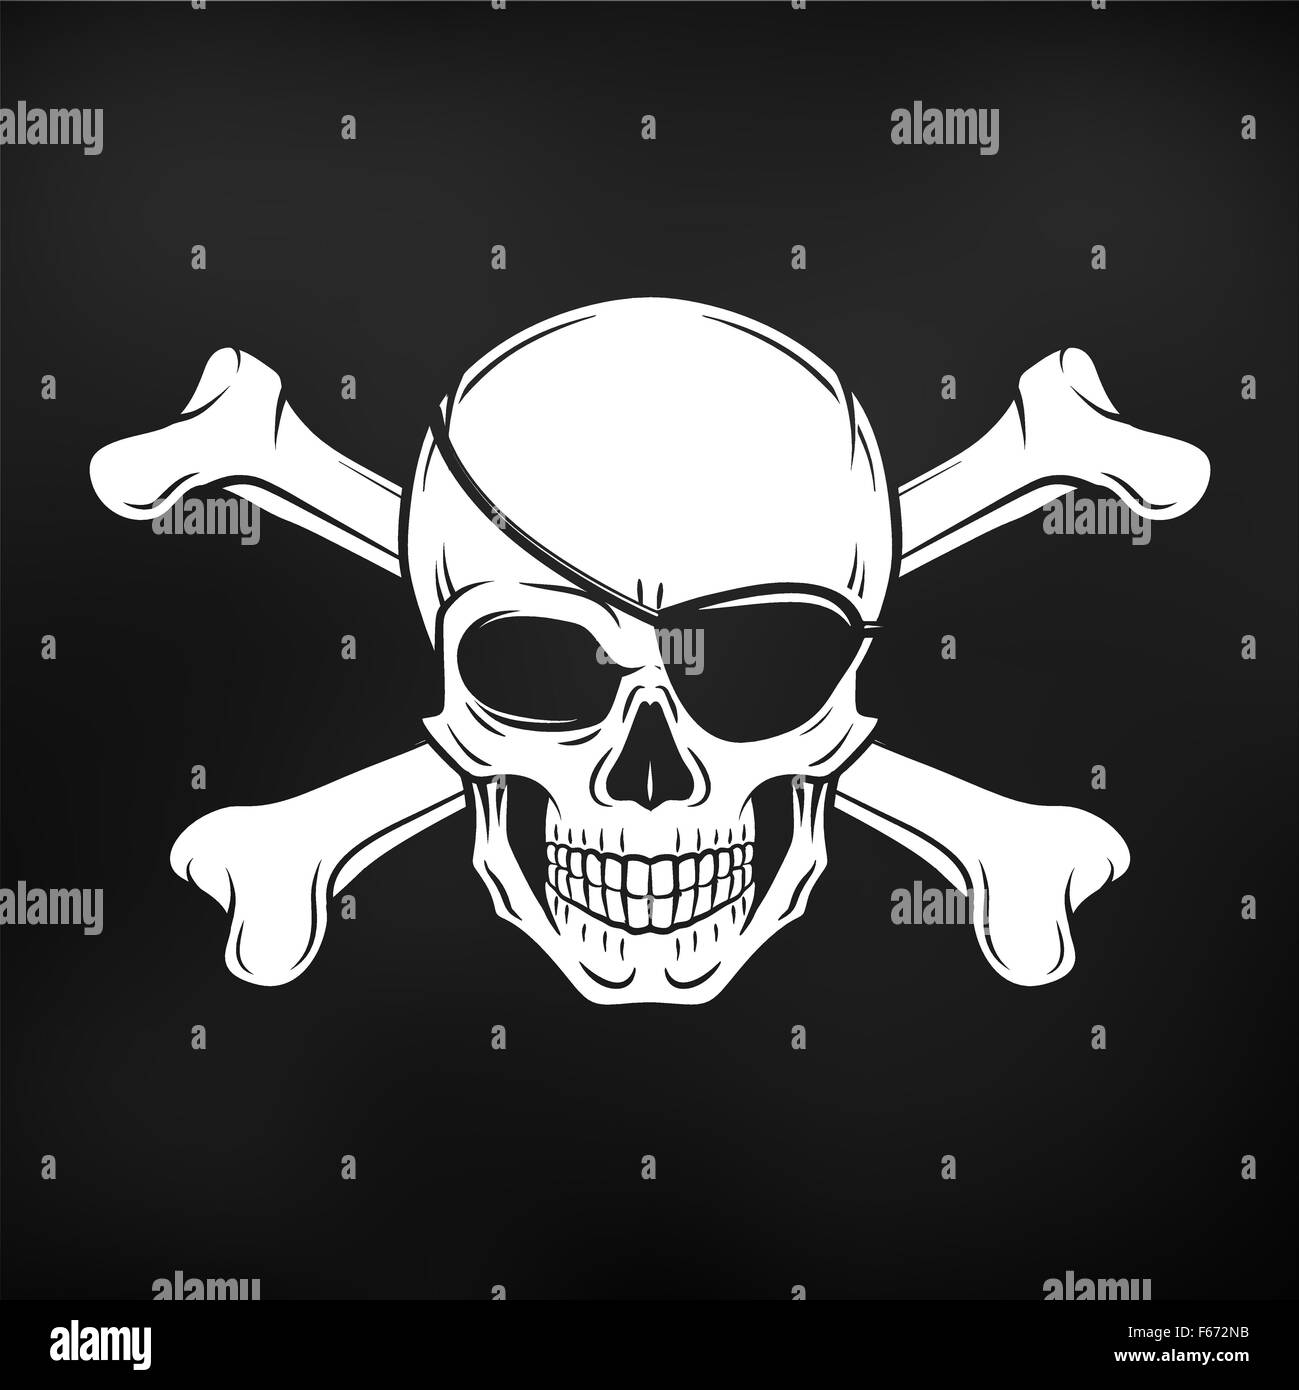 jolly roger with eyepatch and crossbones logo template